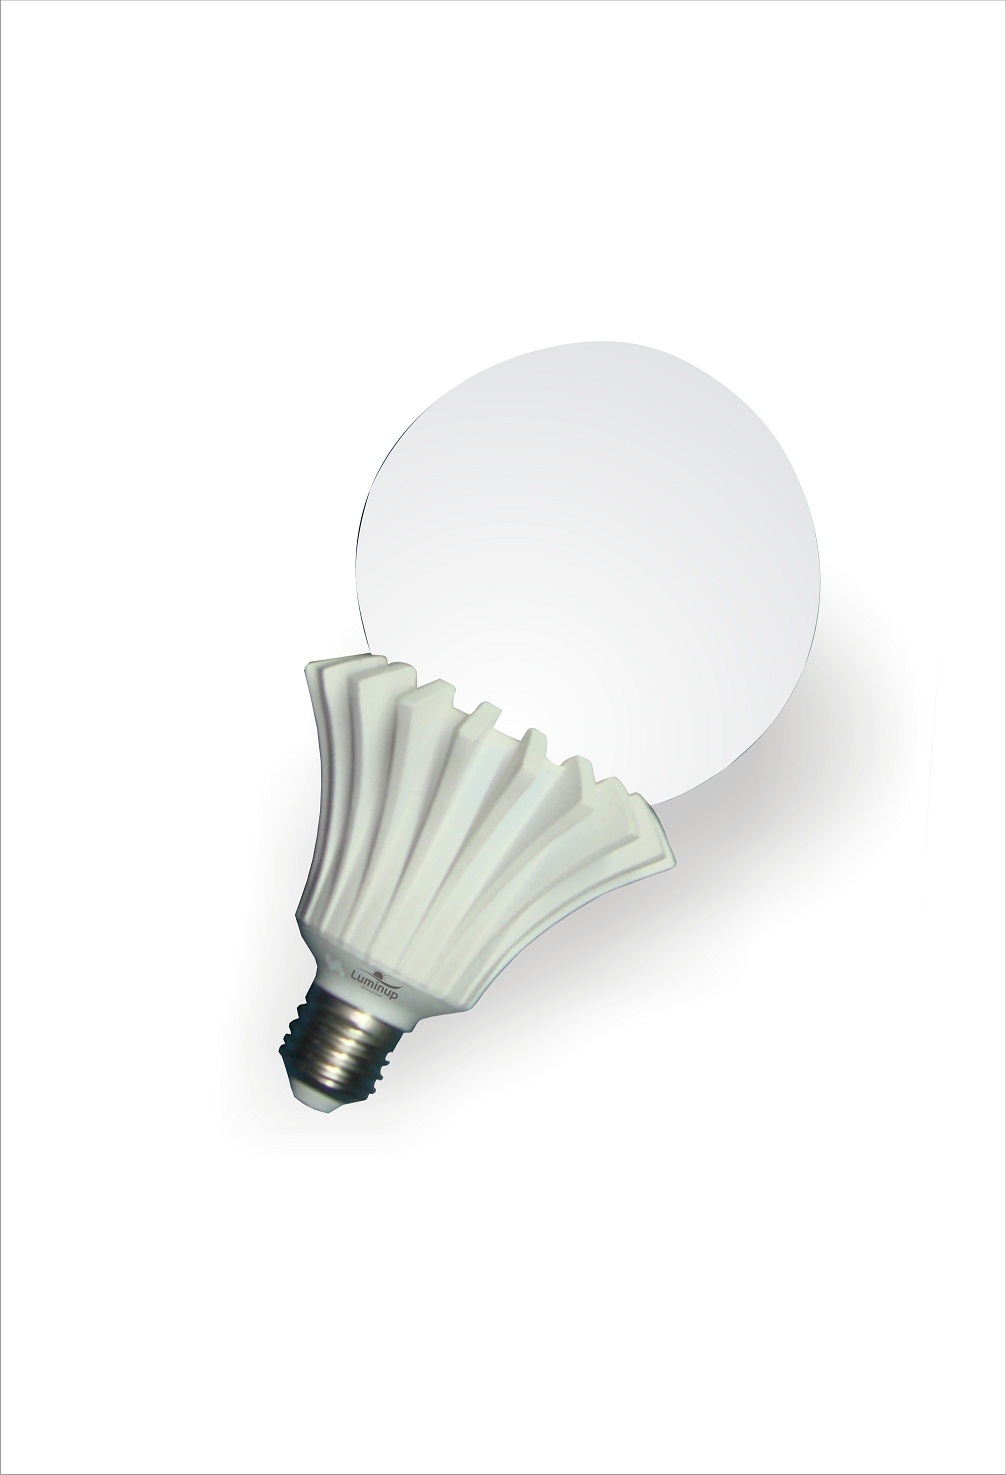 LED 12W Glass Bulb Image